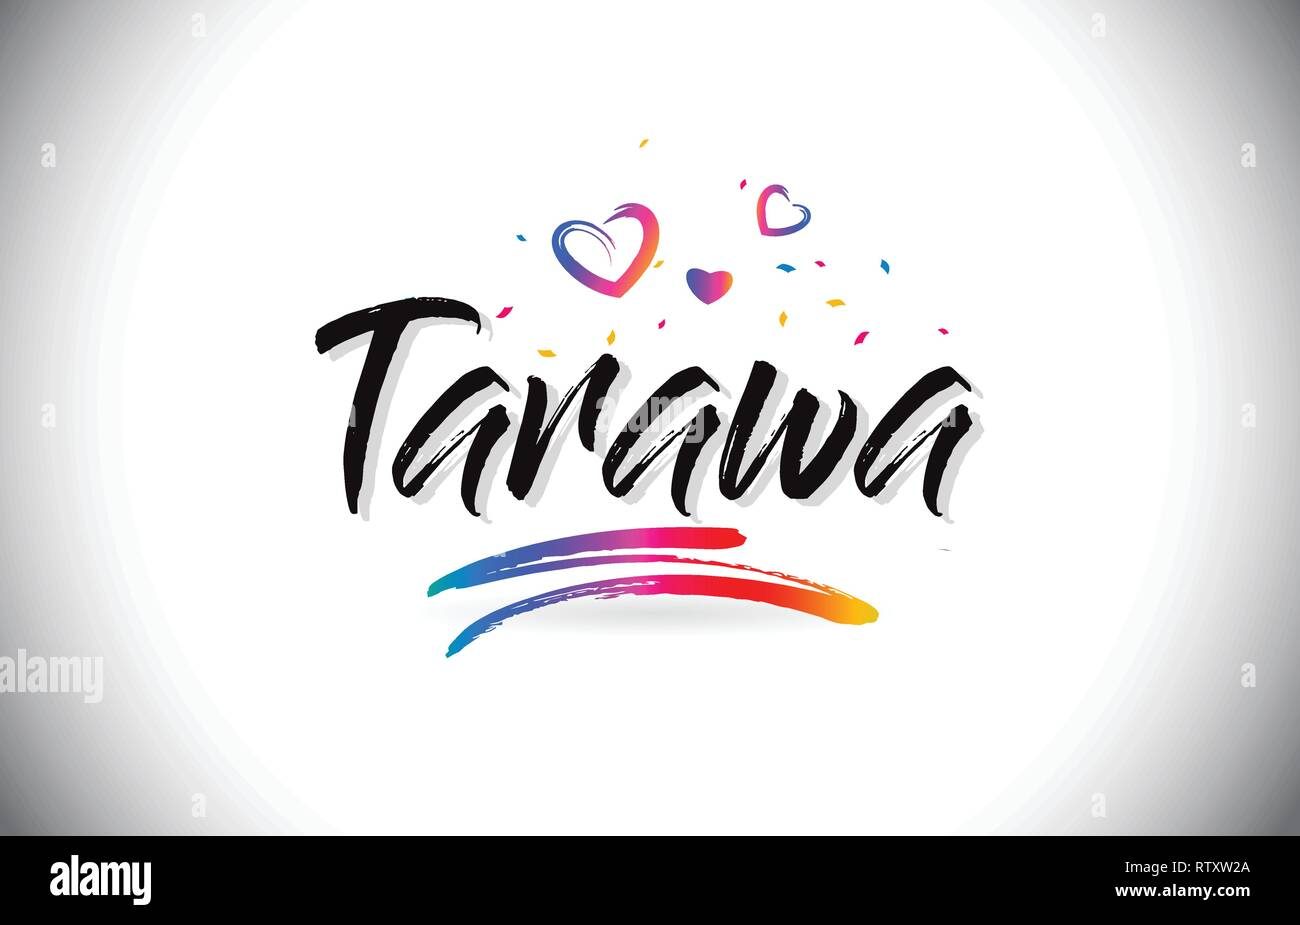 Tarawa Welcome To Word Text with Love Hearts and Creative Handwritten Font Design Vector Illustration. - Stock Image